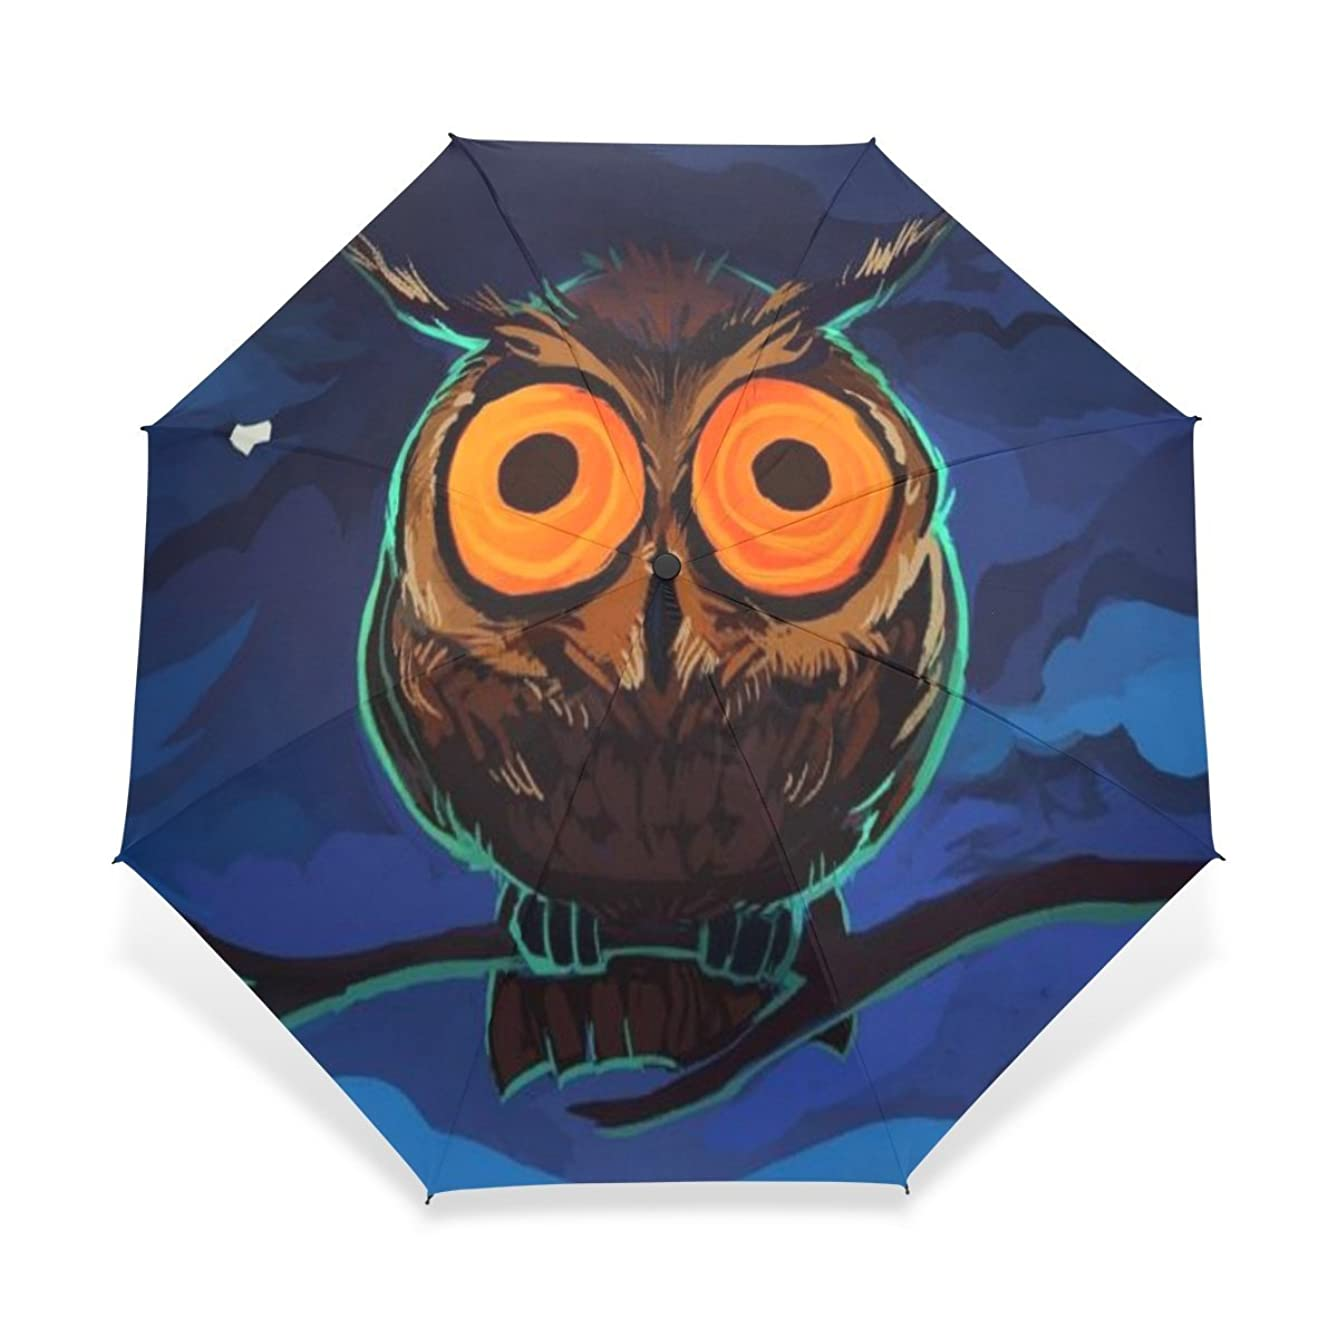 BAIHUISHOP Windproof Golf Umbrella, Compact for Travel By Easy Carrying Sports Rain Umbrella - Strong Frame Unbreakable Owls Orange Eyes Pattern